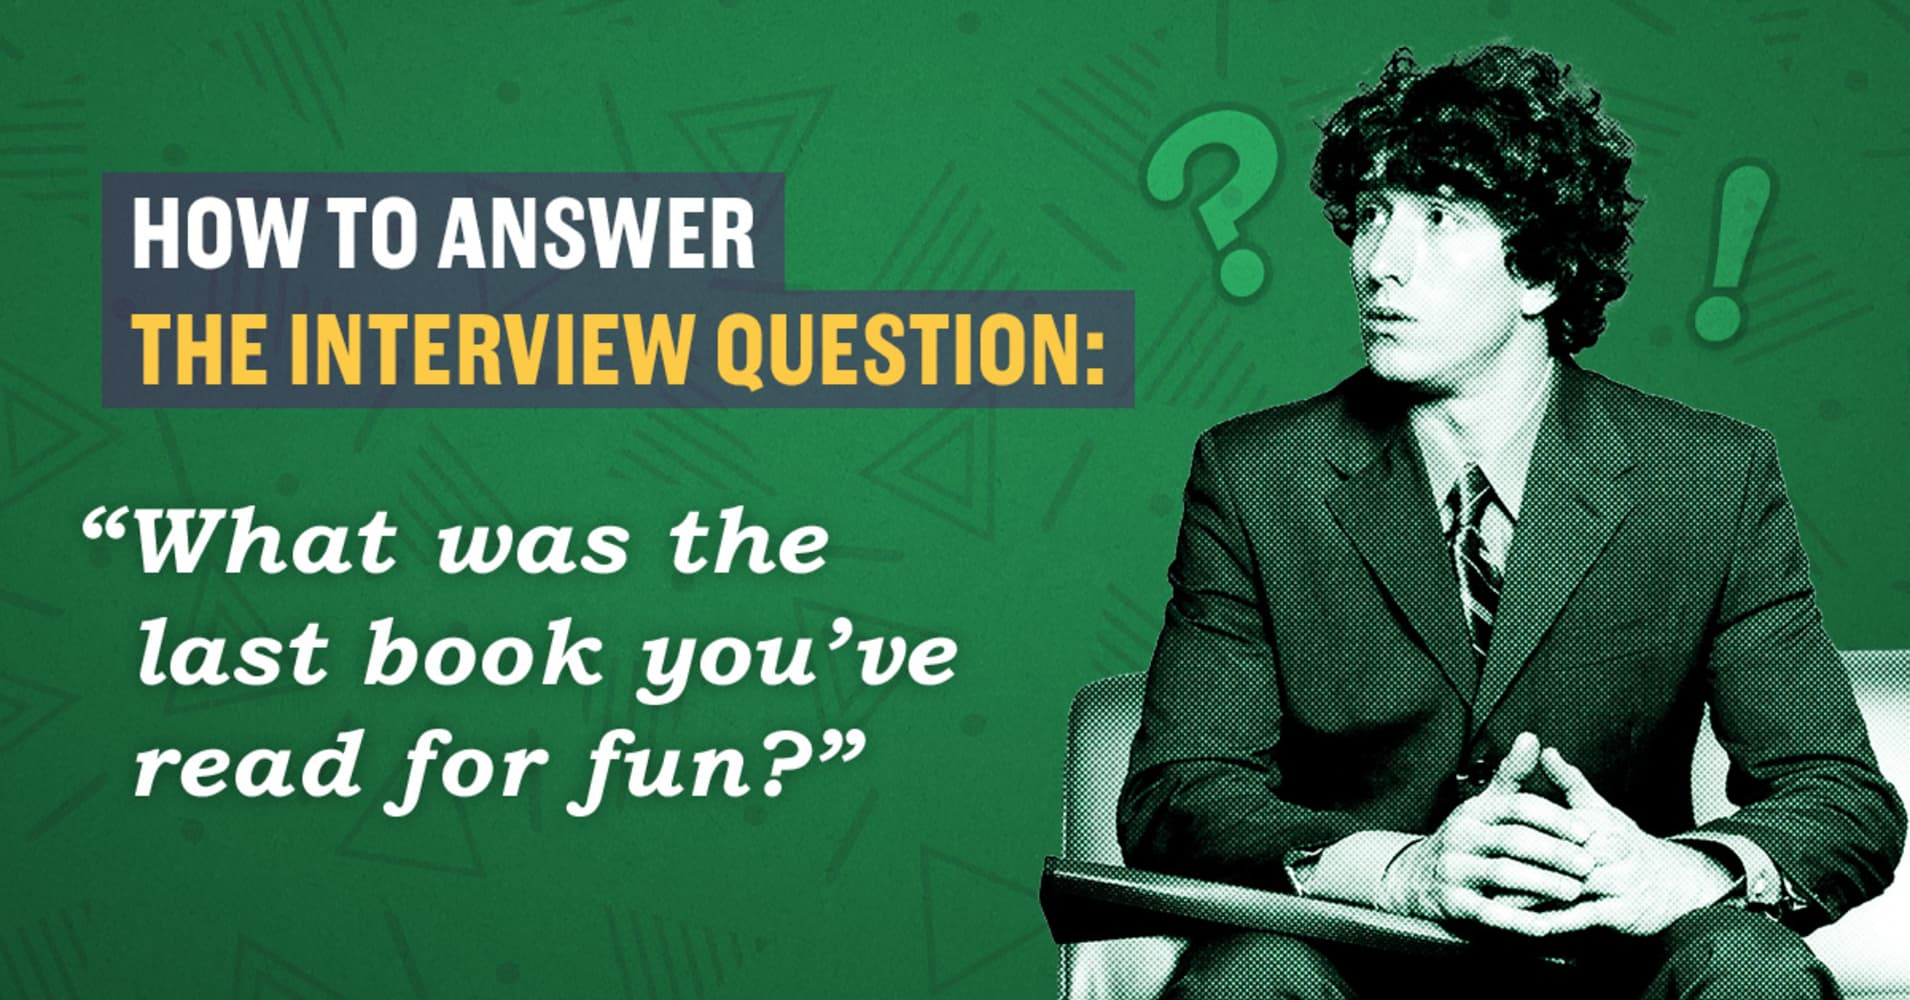 Whats in the interview, and why it influenced Bezos recommendations